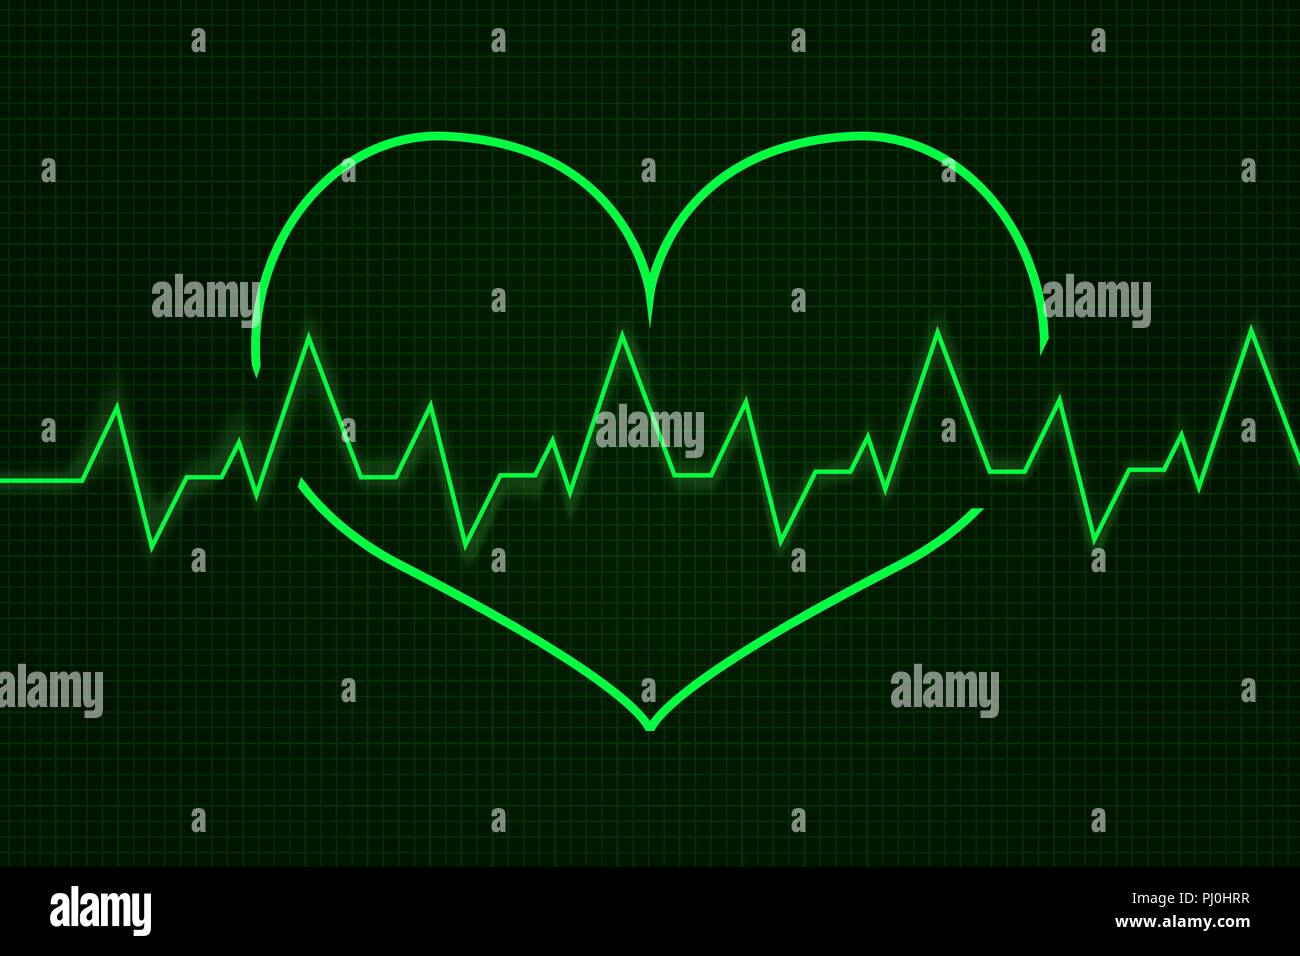 Heartbeat Line Art : Heartbeat png vectors psd and clipart for free download pngtree